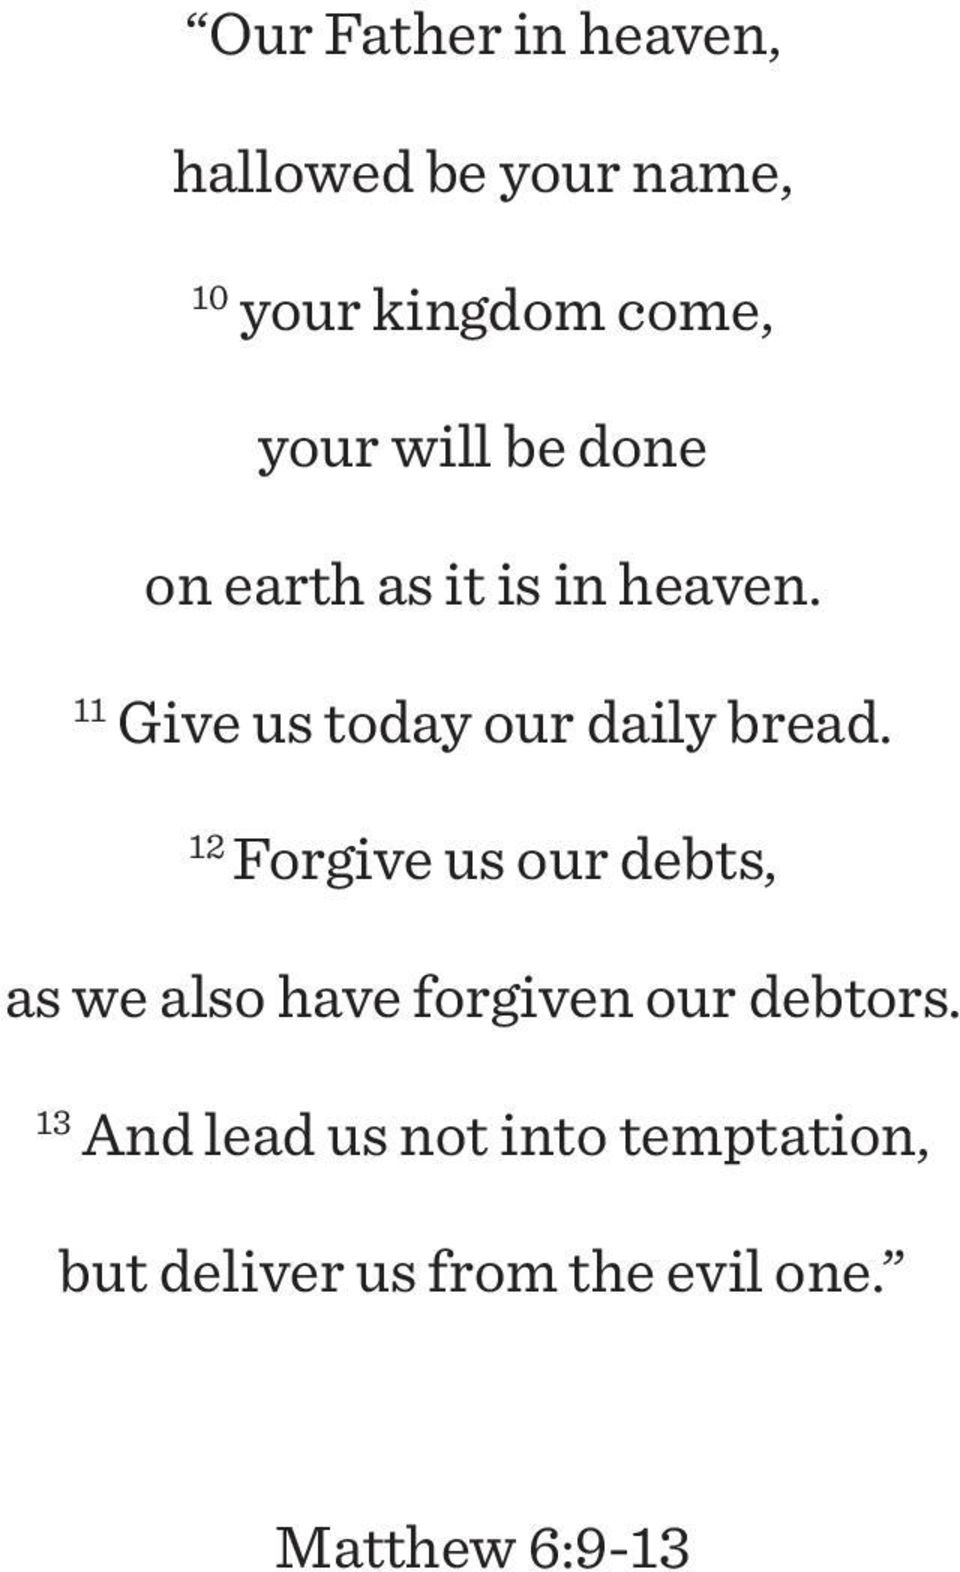 11 Give us today our daily bread.